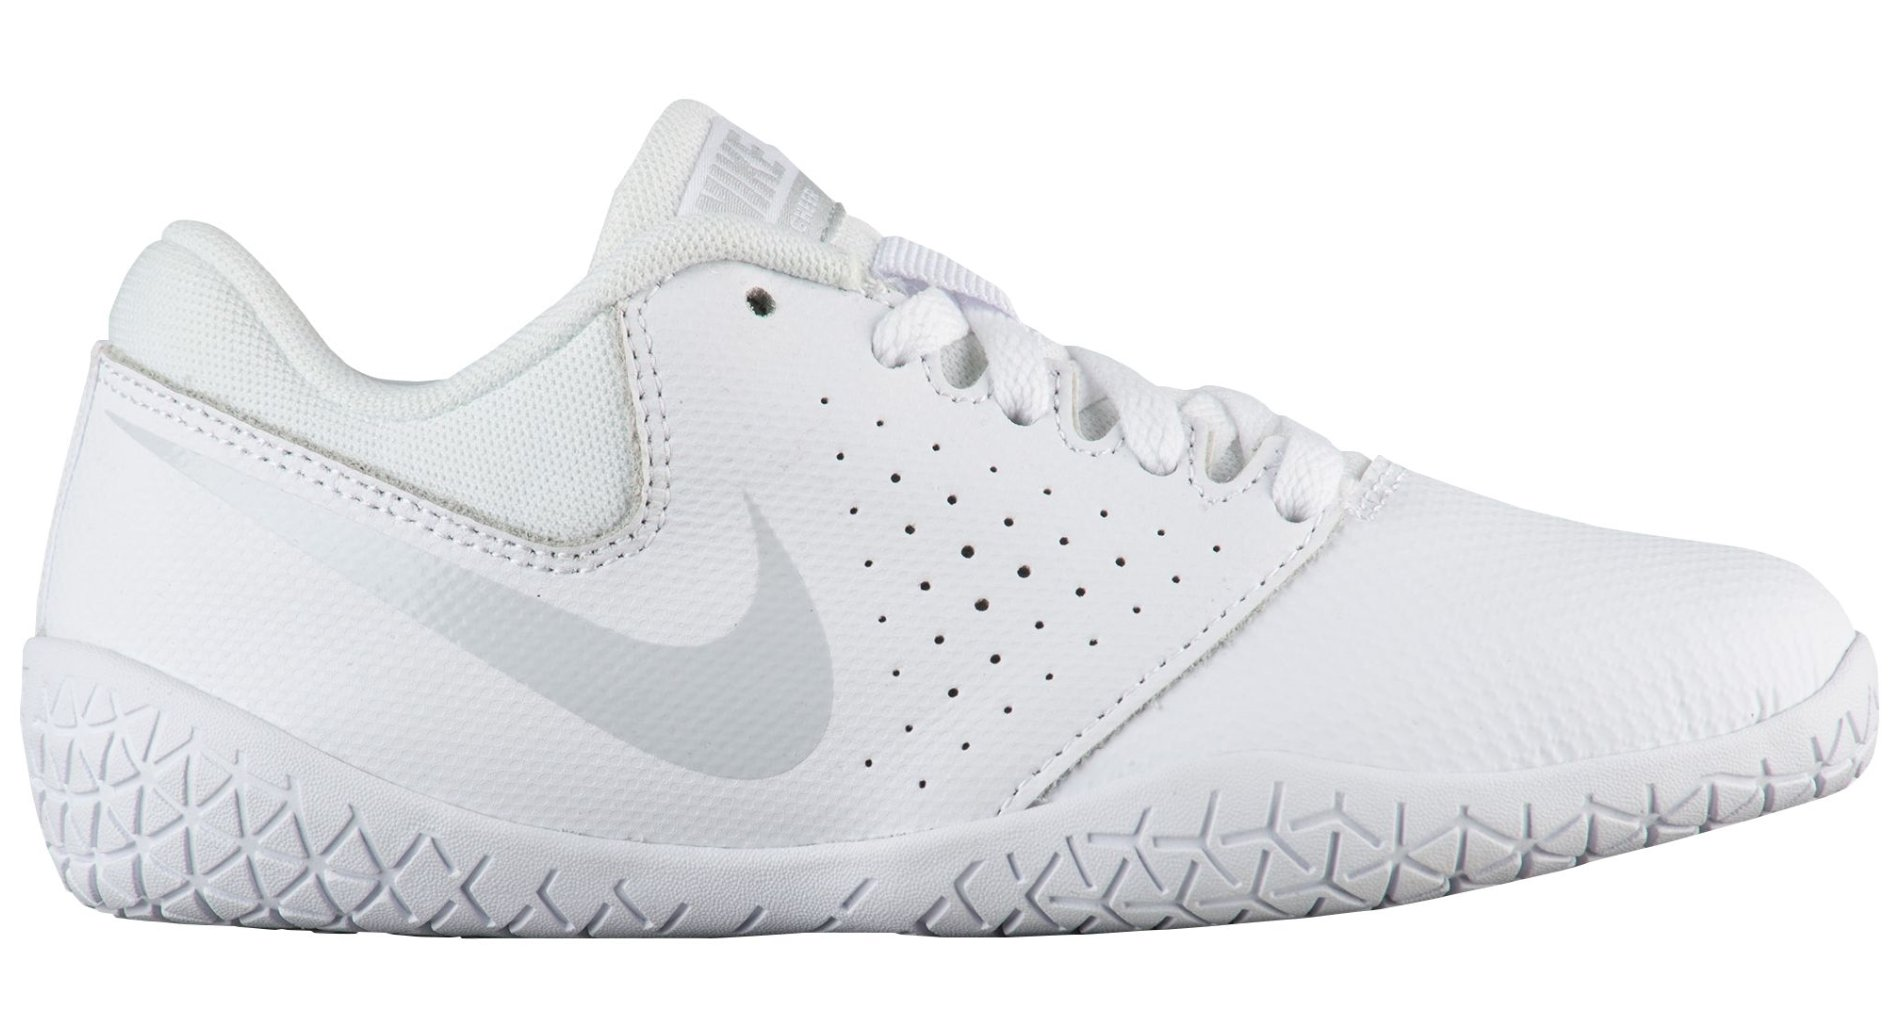 Nike Girl's Youth Cheer Sideline IV Cheerleading Shoes (1 M US Little Kid, White/Pure Platinum/White)